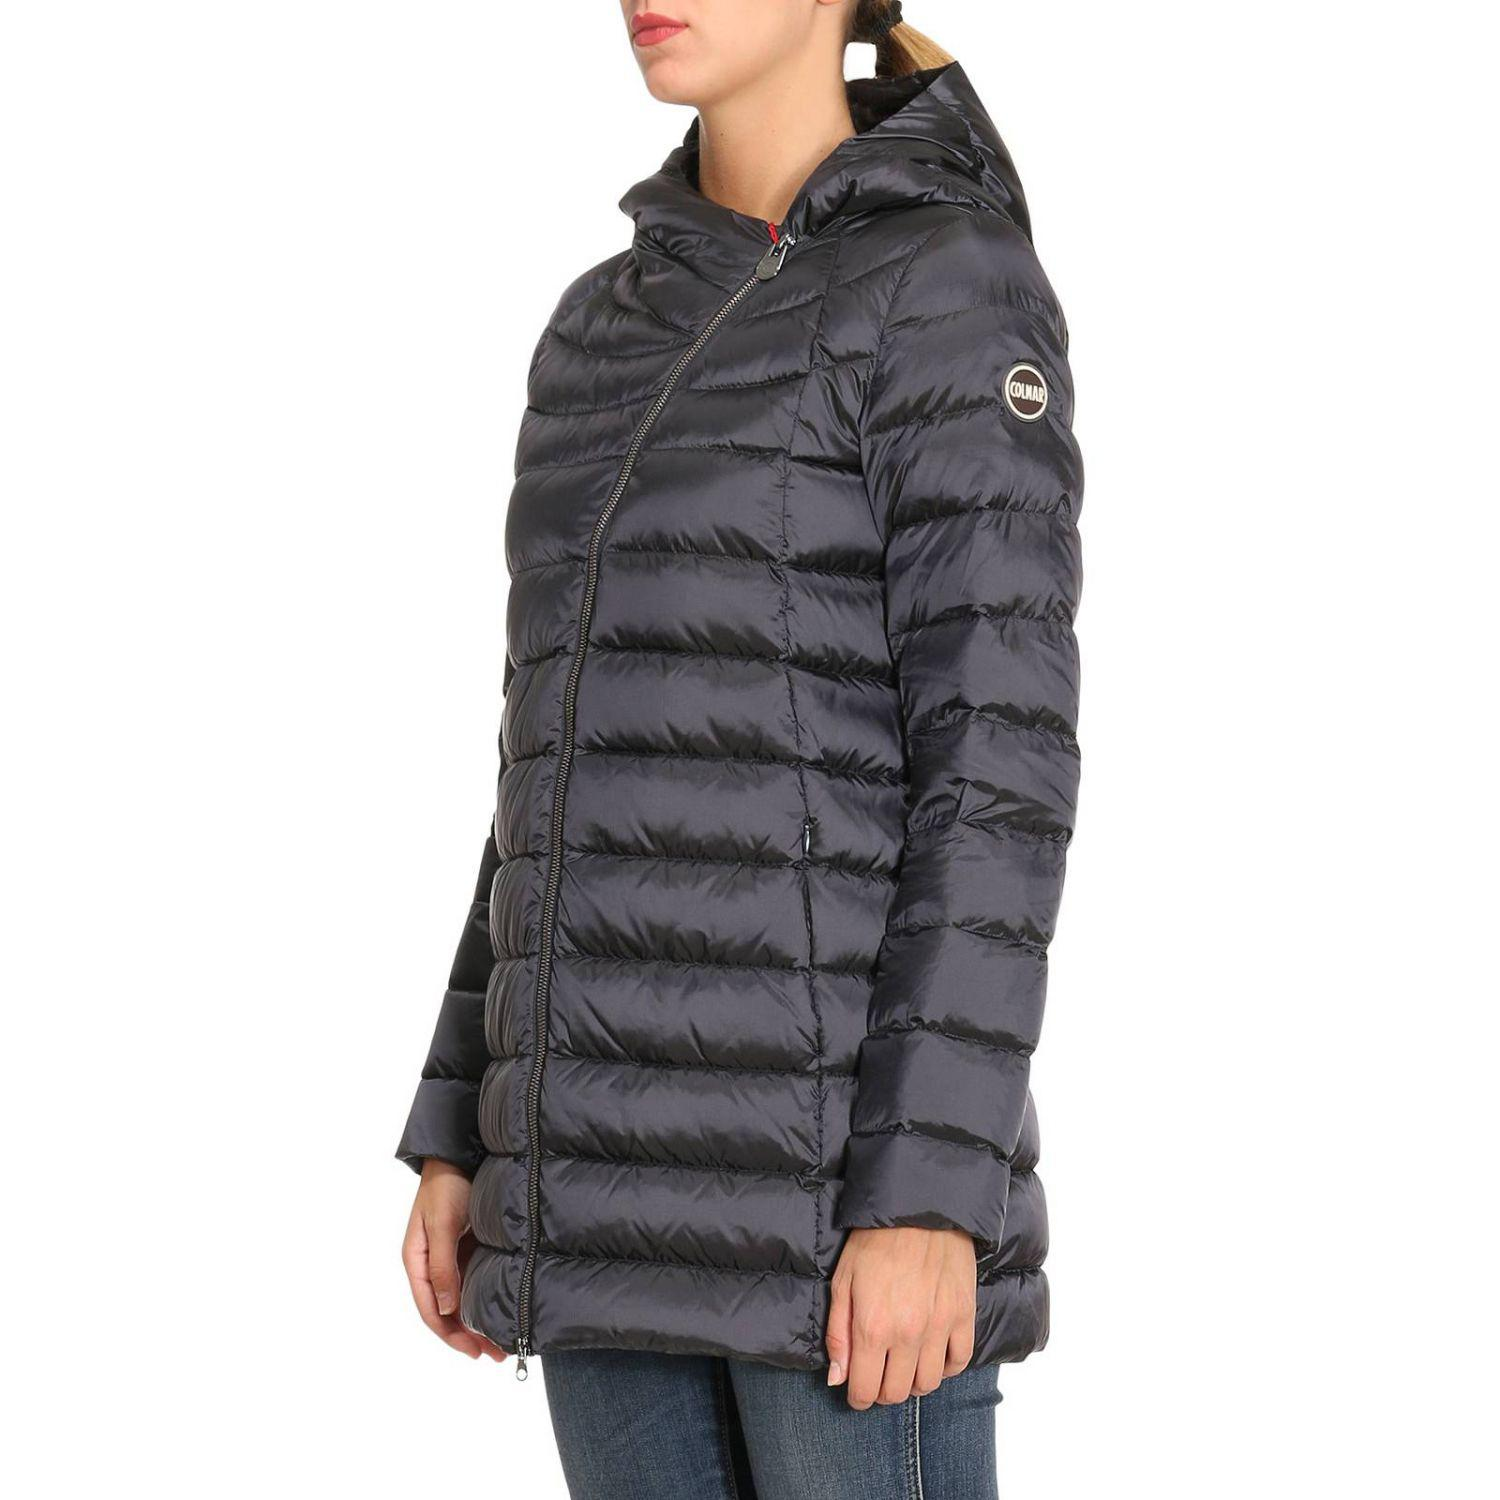 colmar black single women Buy second-hand colmar coats for women on vestiaire collective buy, sell, empty your wardrobe on our website.